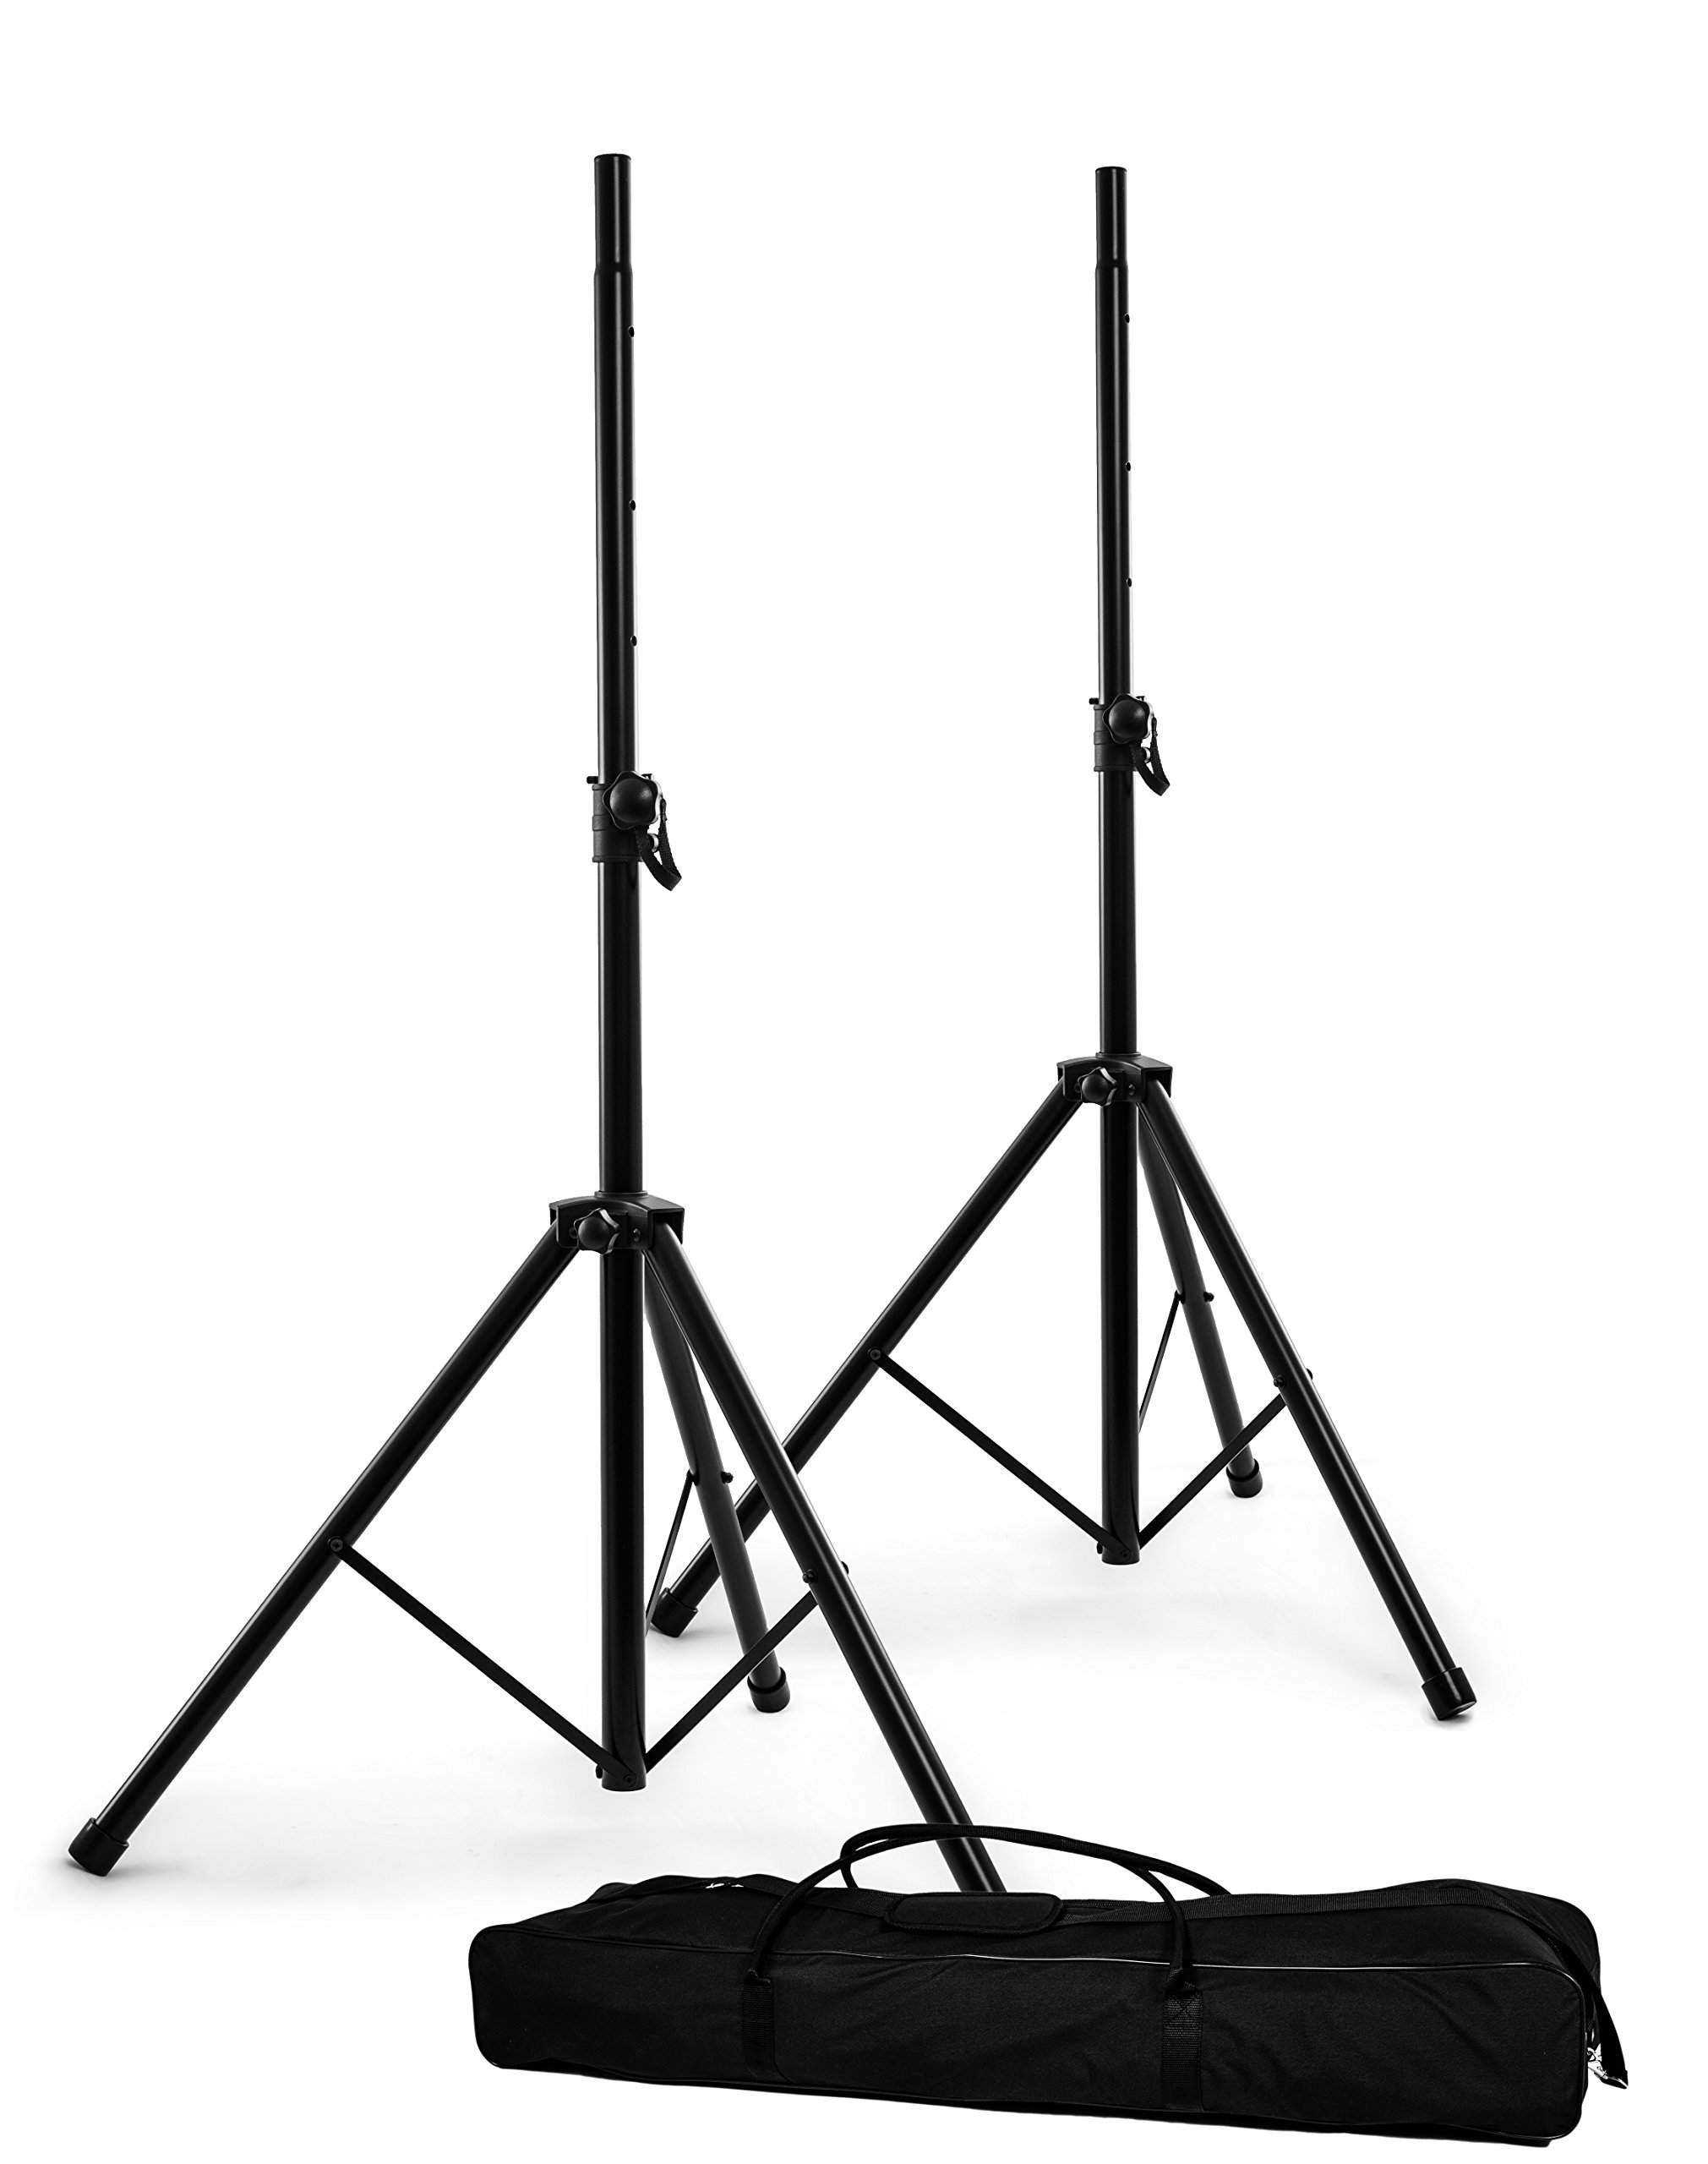 Nomad NSS-8033PK Two 8033 Speaker Stands with Carry Bag